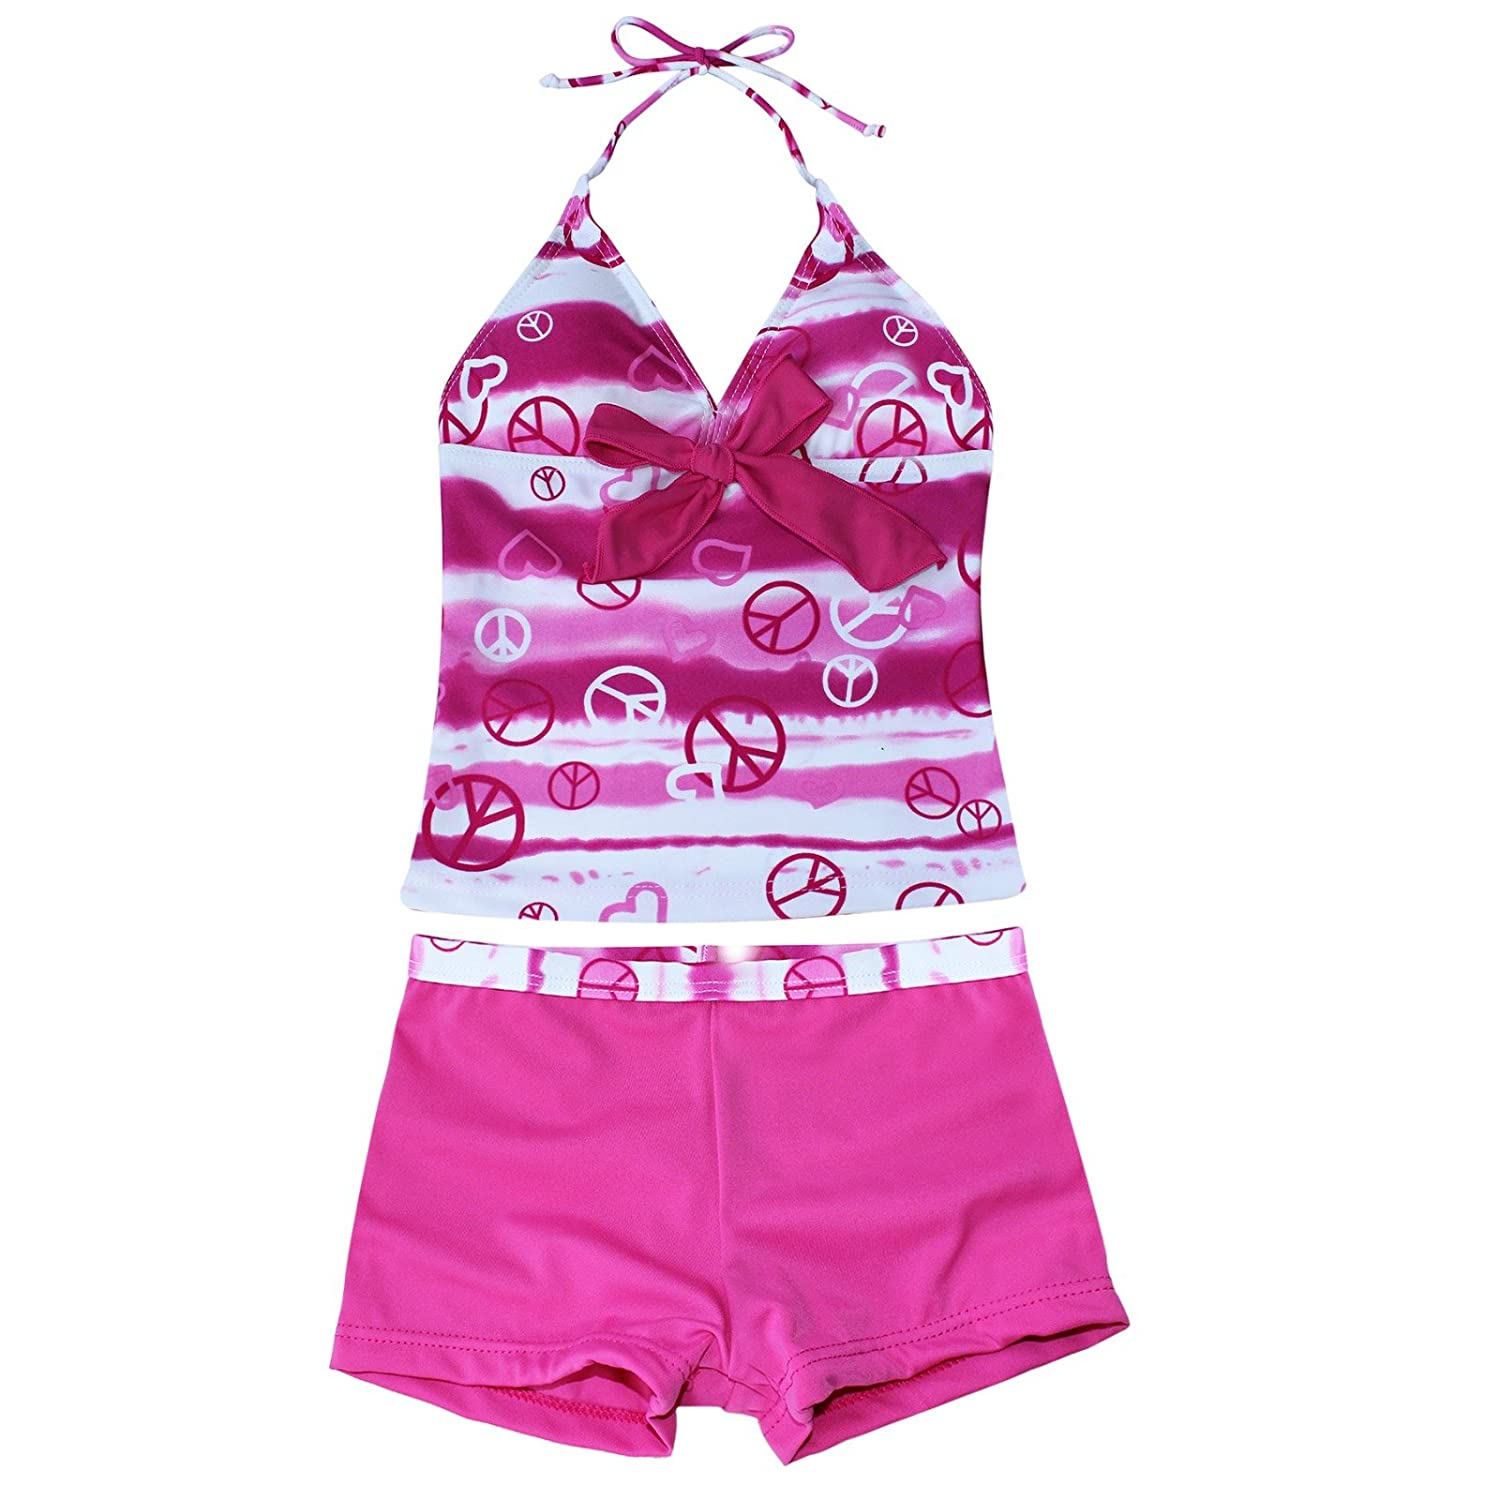 TiaoBug Girls Summer Tankini Spaghetti Swimsuit Swimwear Bathing Suits